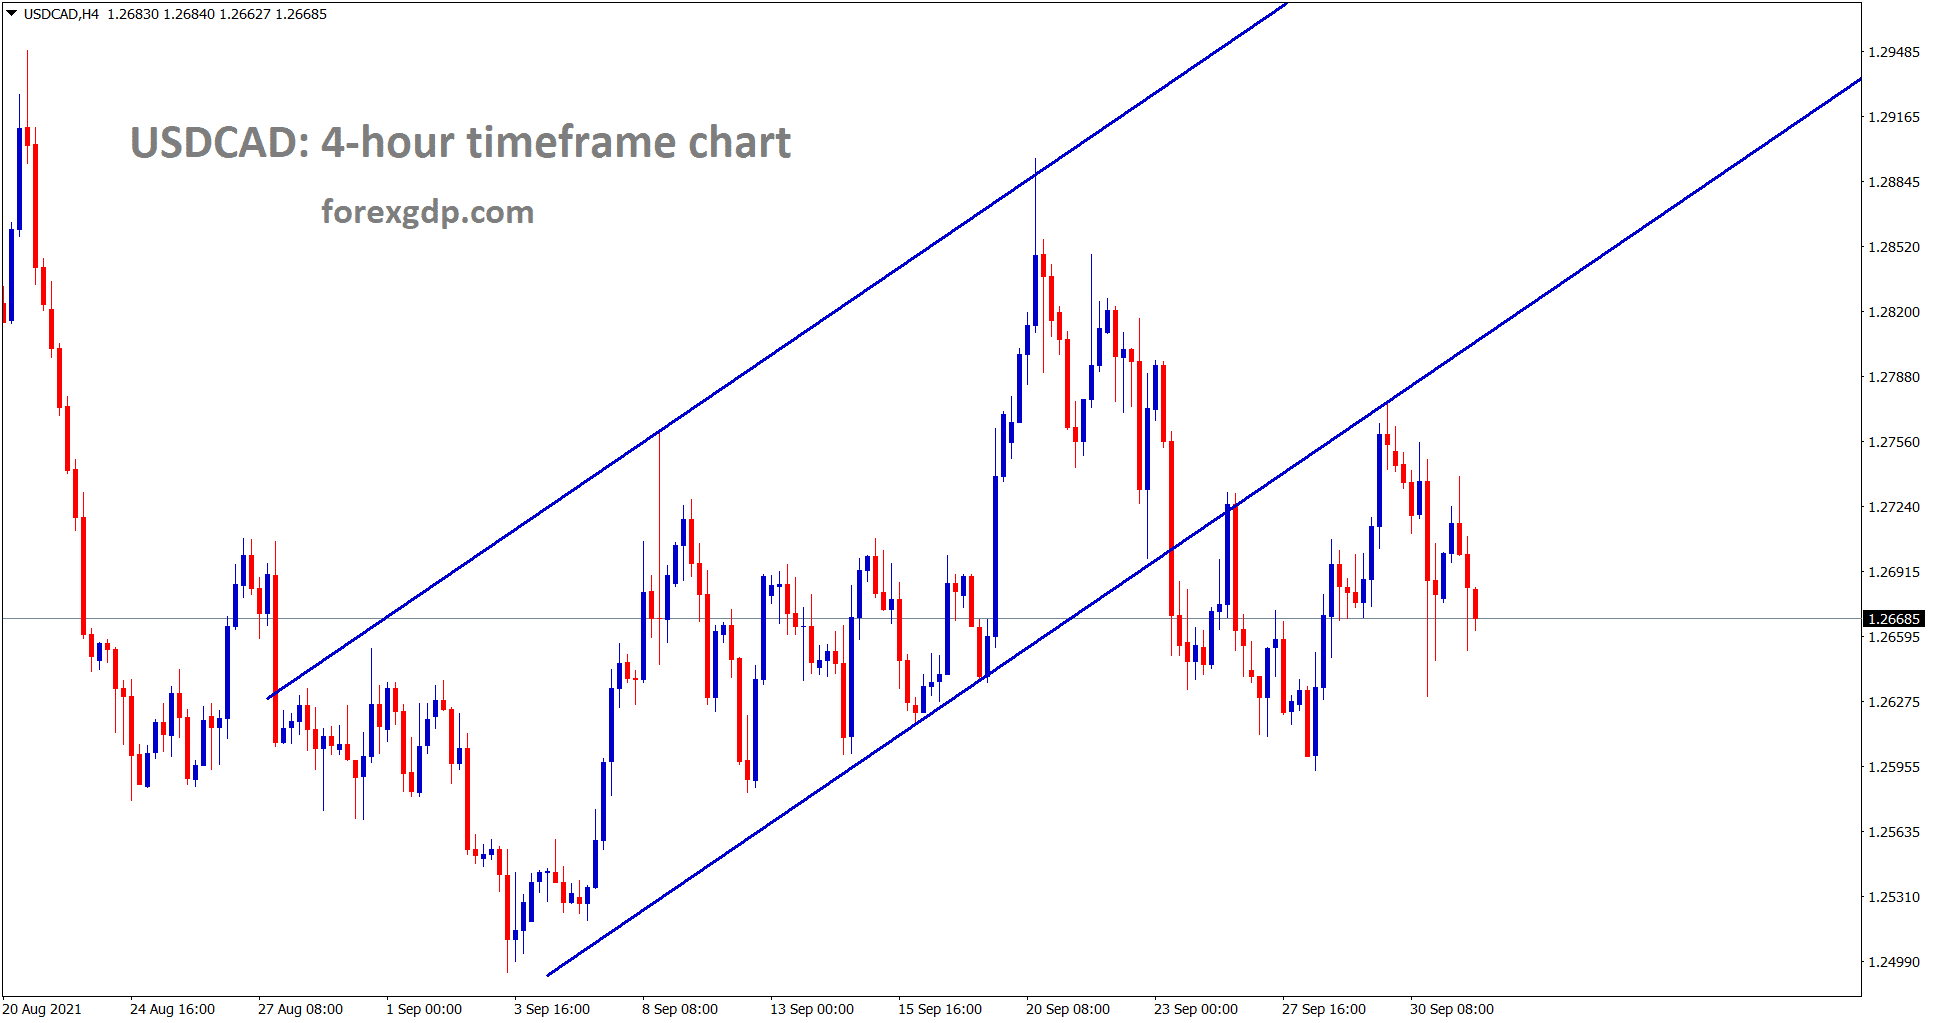 USDCAD has retested the breakout level of the ascending channel twice